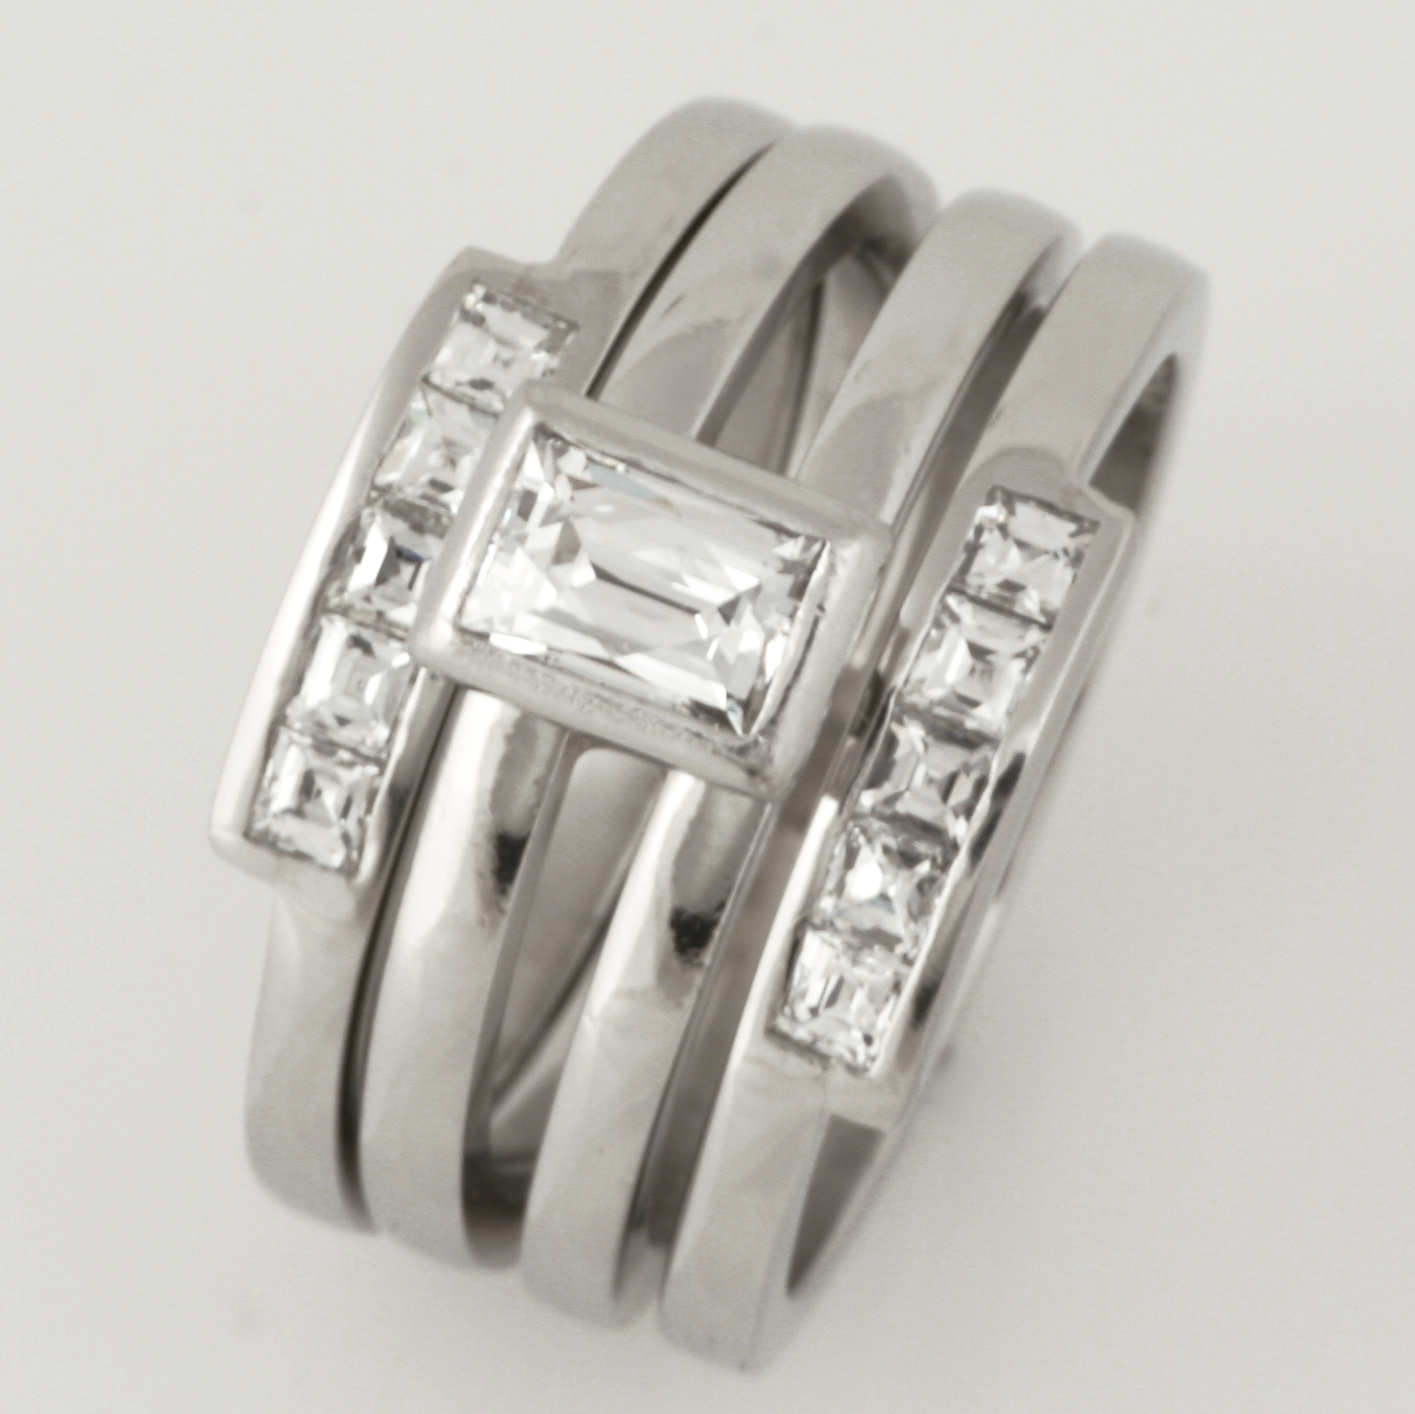 Handmade ladies platinum Engagement, Wedding and Eternity ring set featuring 'Tycoon' cut diamonds